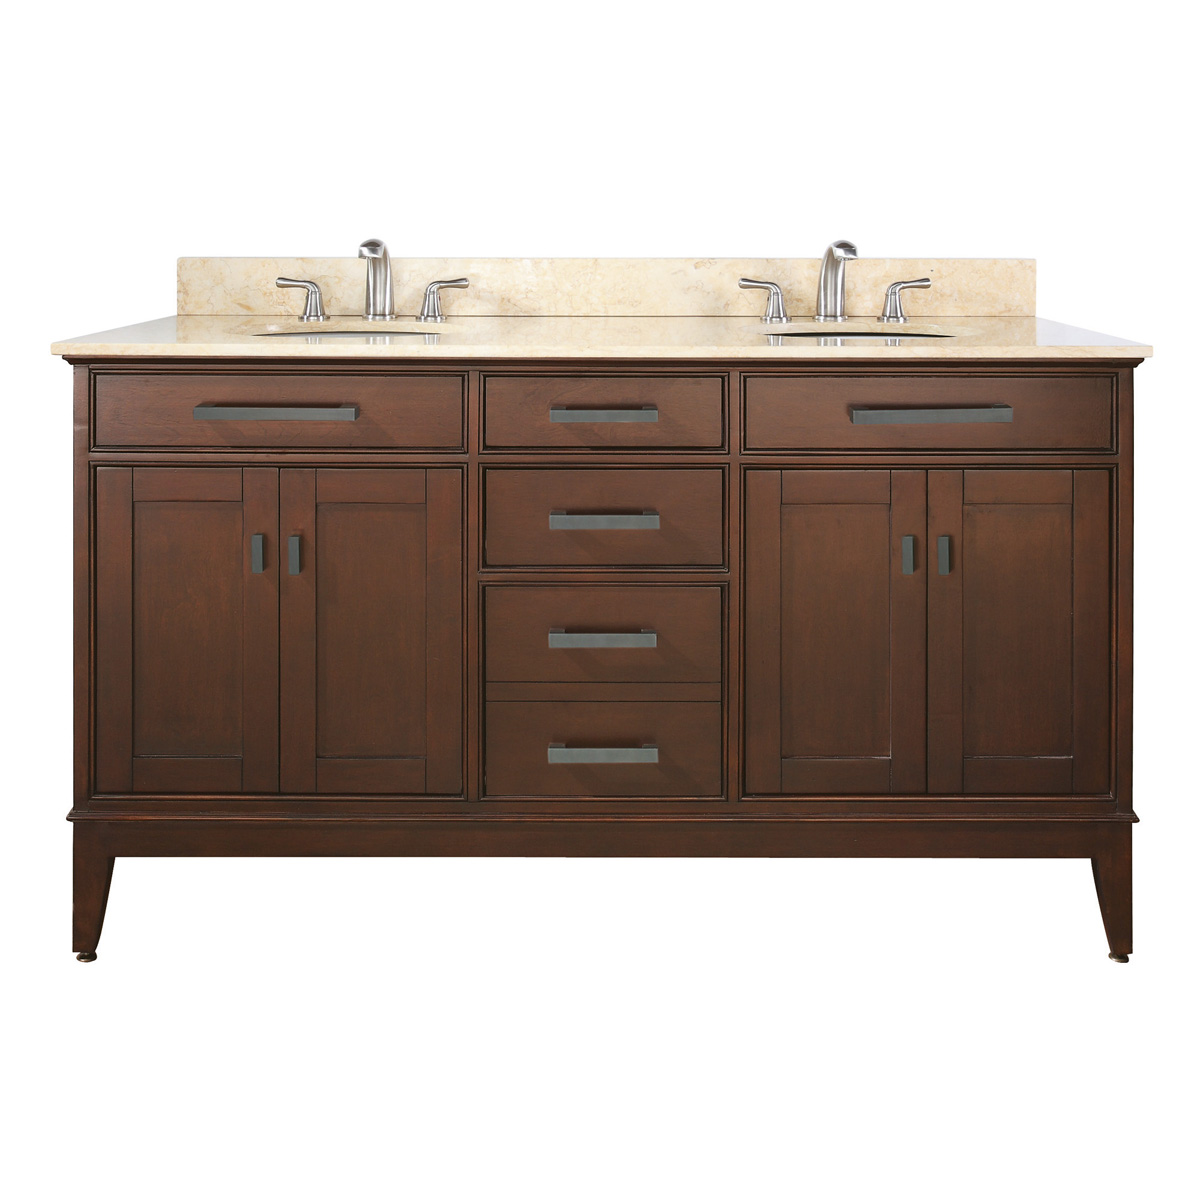 "60"" Marciana Double Vanity in Tobacco"